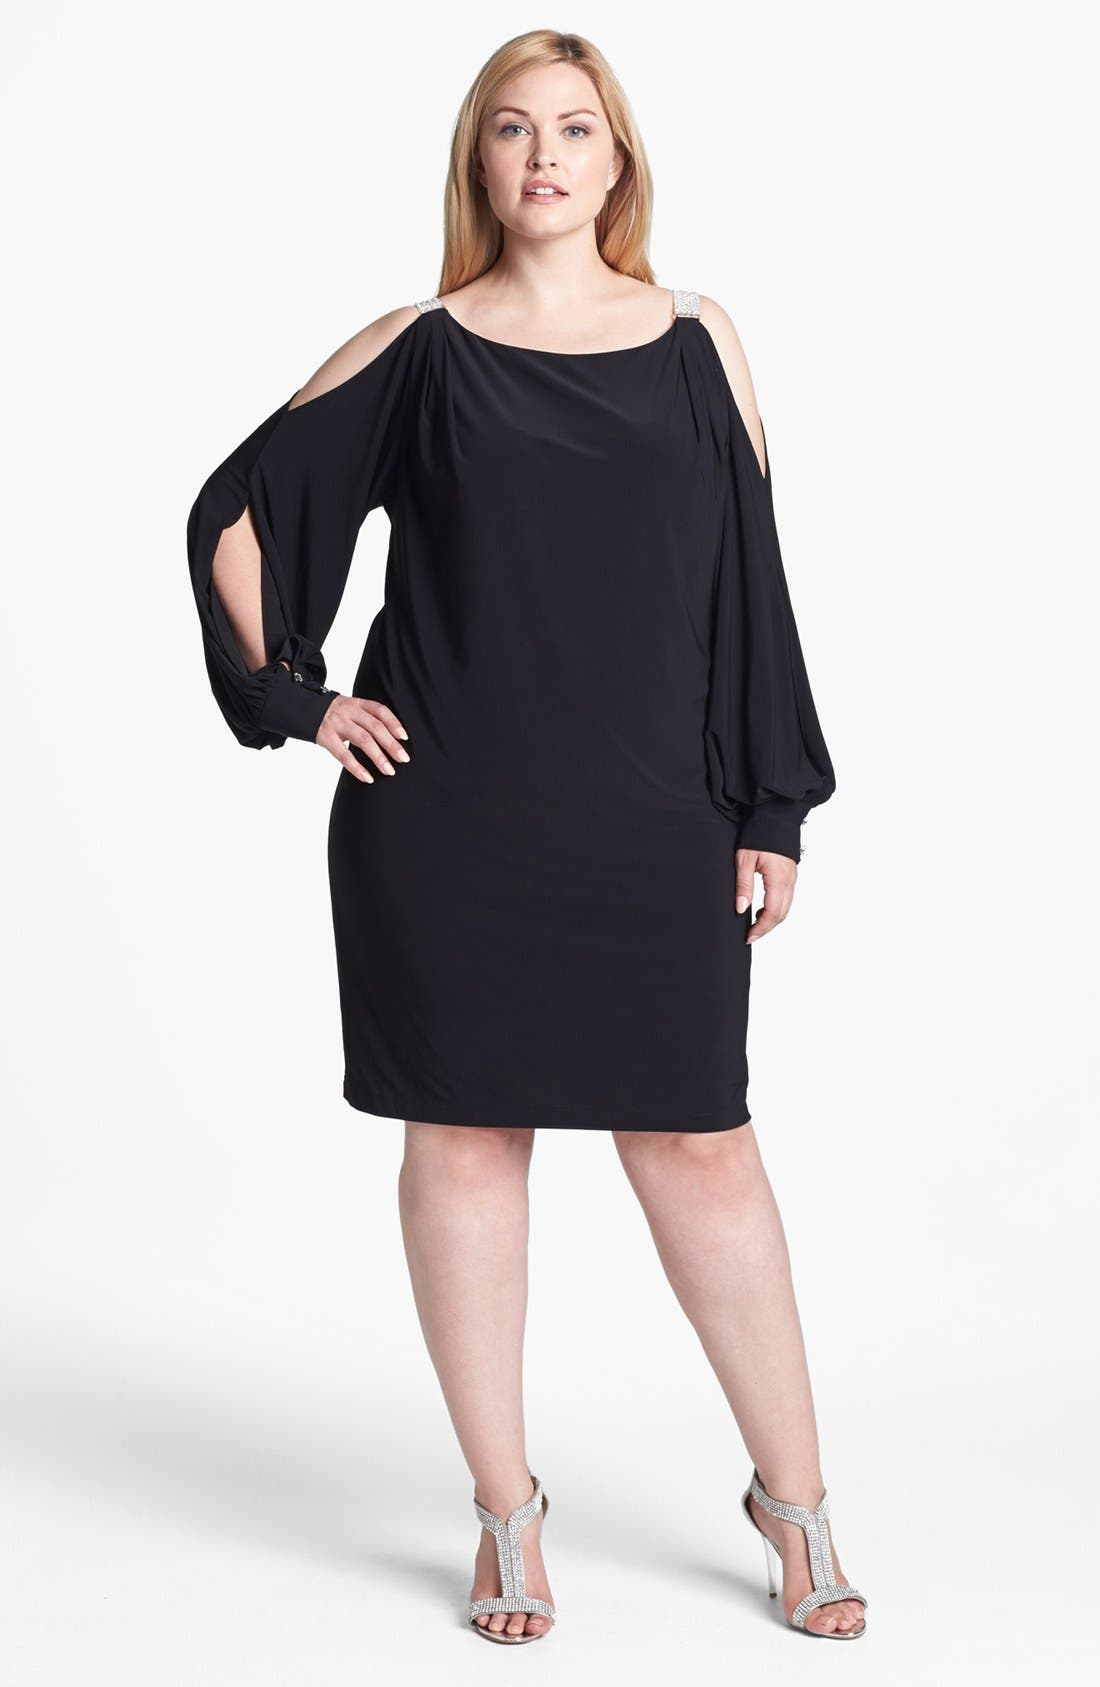 Alternate Image 1 Selected - Xscape Embellished Cold Shoulder Jersey Dress (Plus Size)